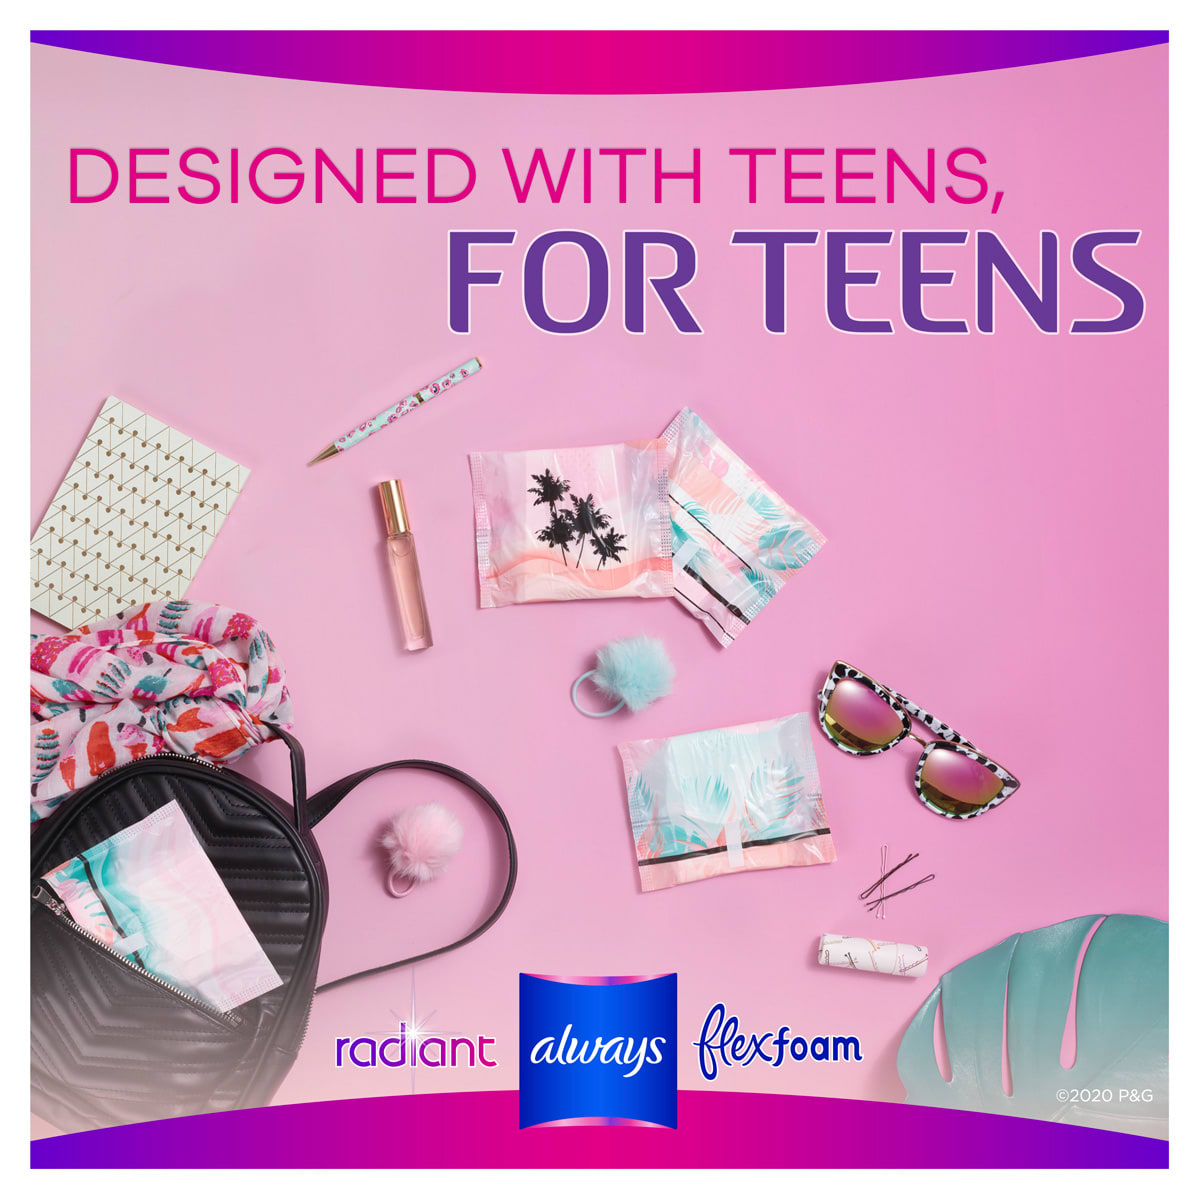 Designed with teens. For teens.